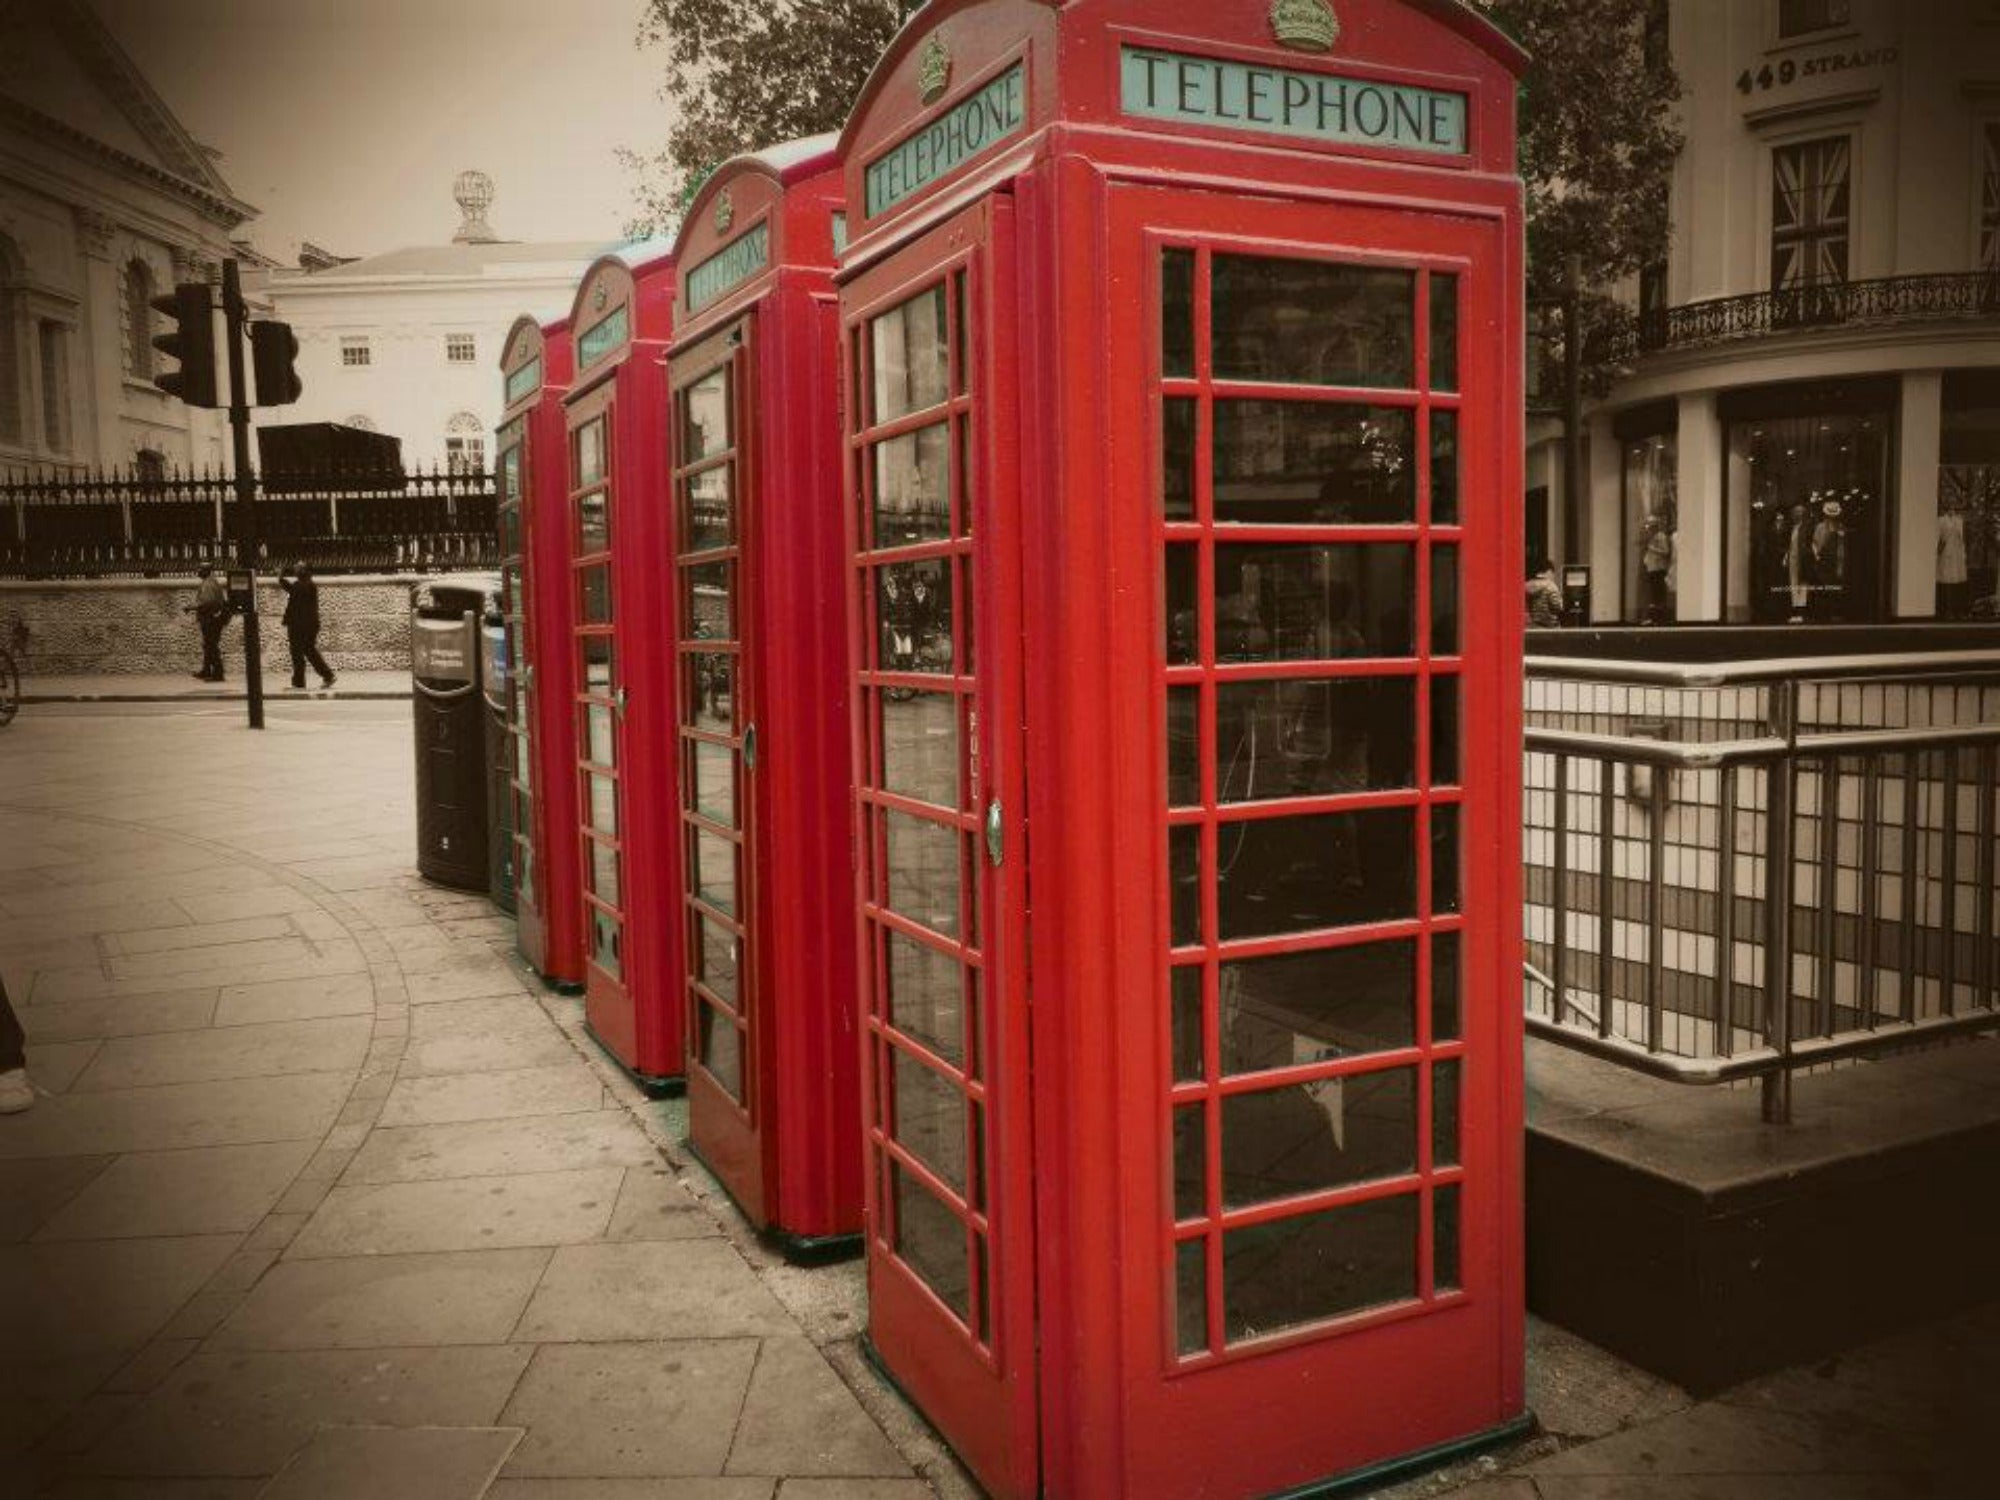 Telephone Booth in Big Ben